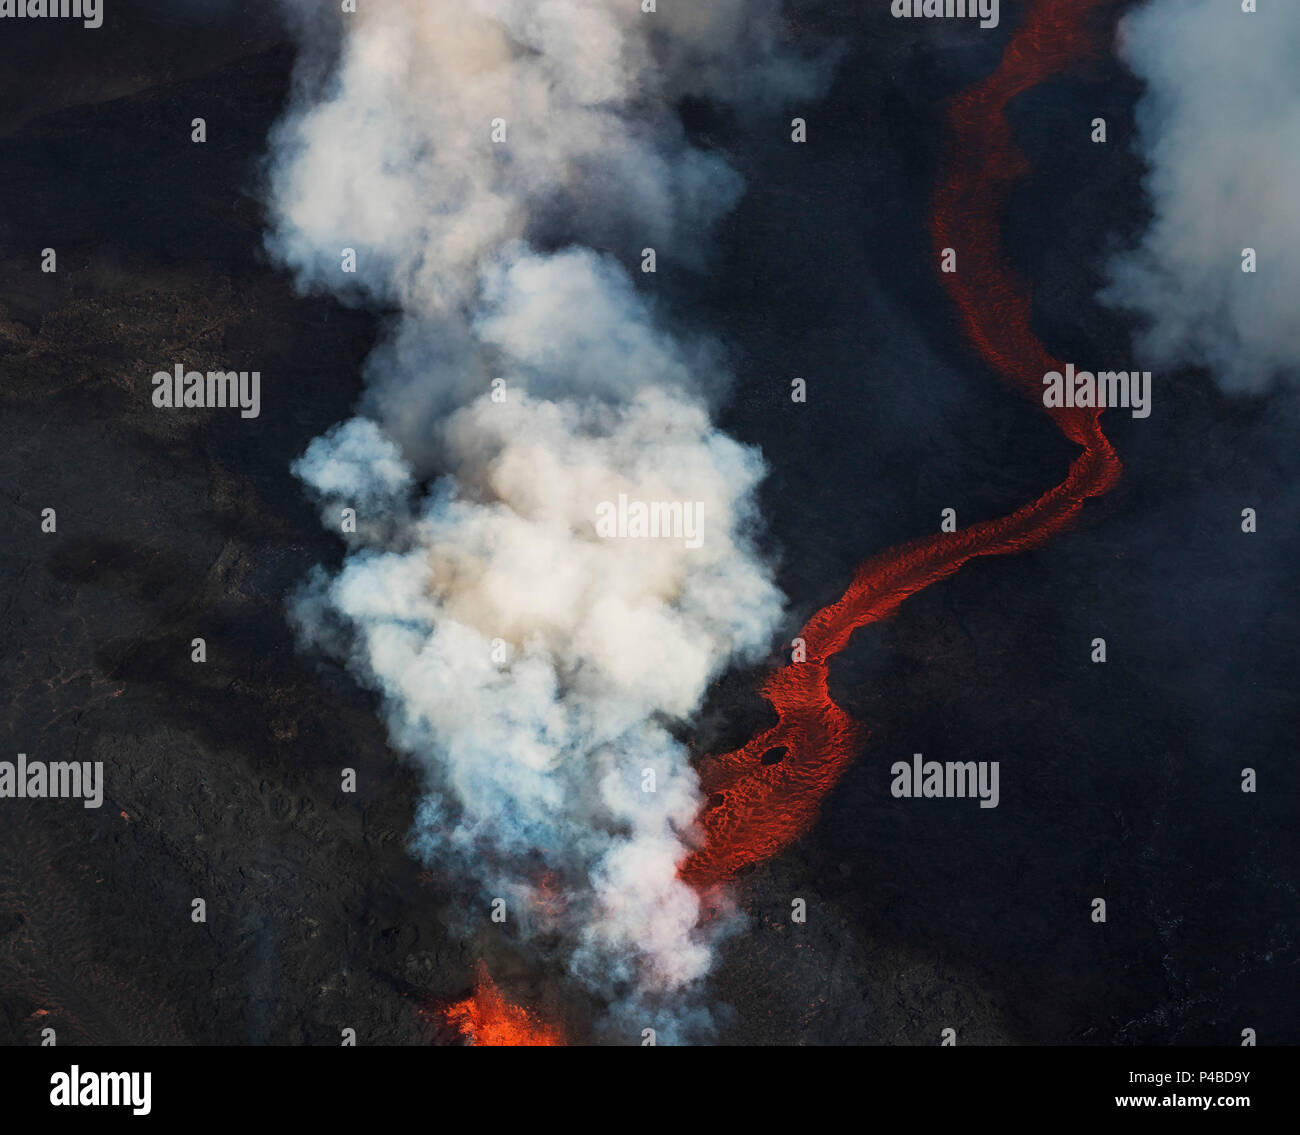 Aerial view of lava and steam. August 29, 2014 a fissure eruption started in Holuhraun at the northern end of a magma intrusion, which had moved progressively north, from the Bardarbunga volcano. Bardarbunga is a stratovolcano located under Vatnajokull, Iceland's most extensive glacier. Picture Date: September 3, 2014 - Stock Image